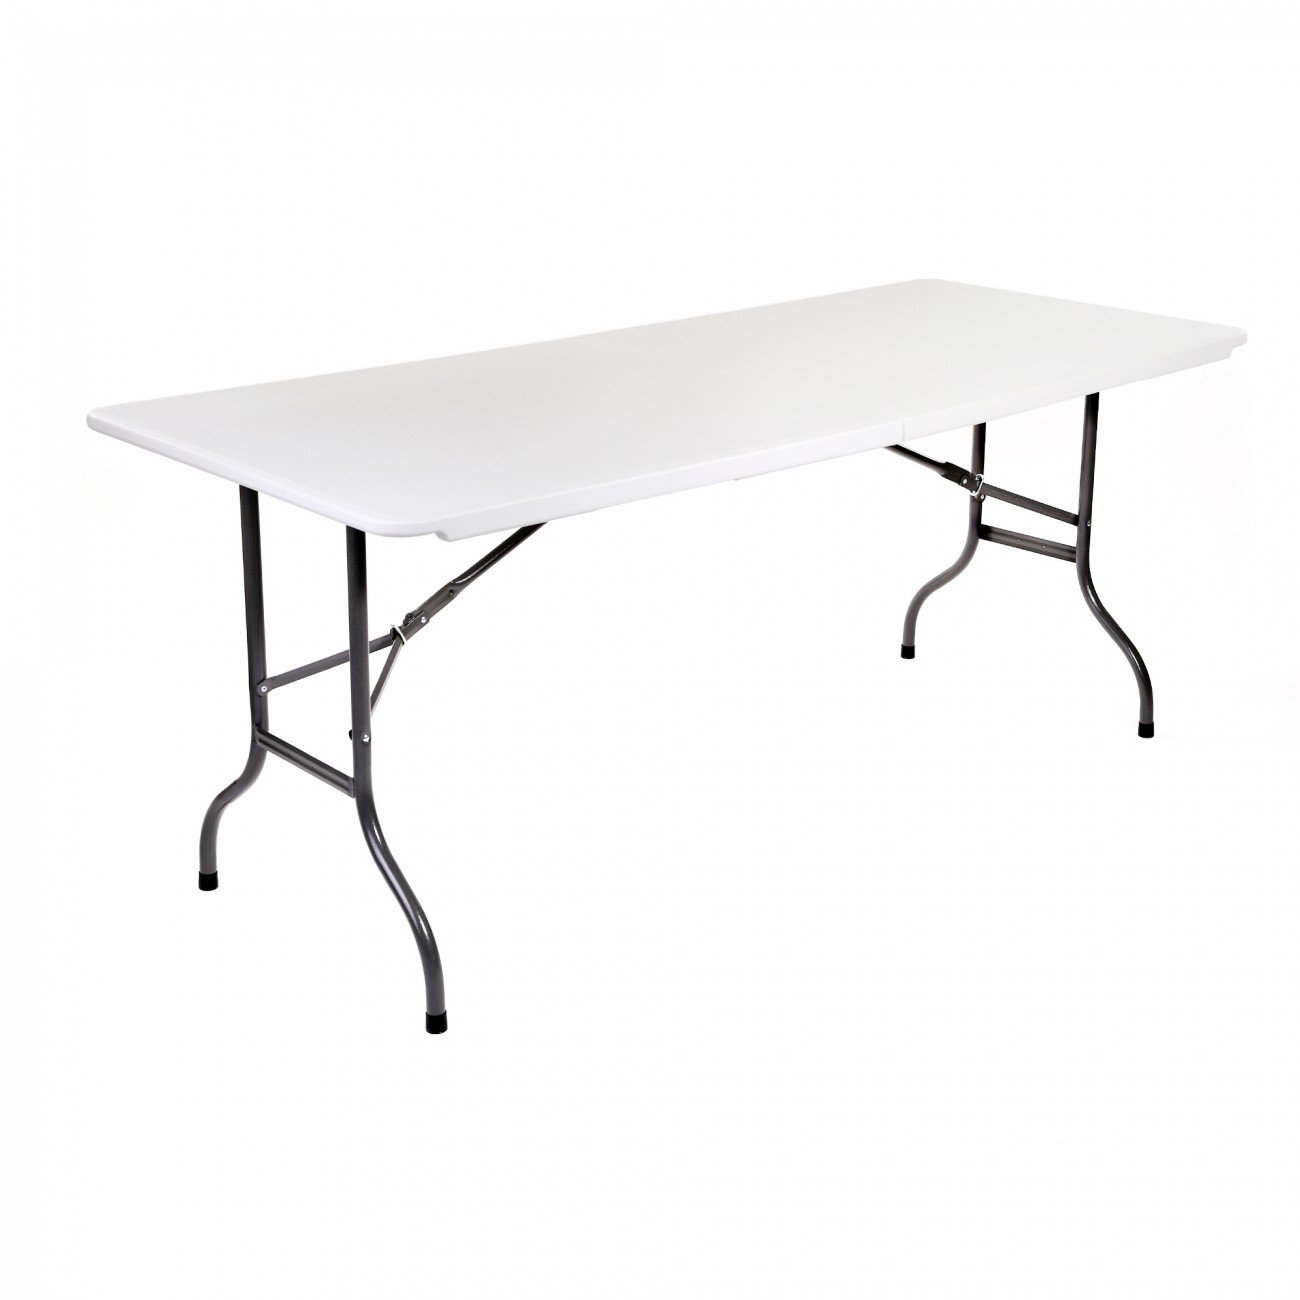 Acheter table pliante table pliable table rabattable table for Table de jardin pliante plastique